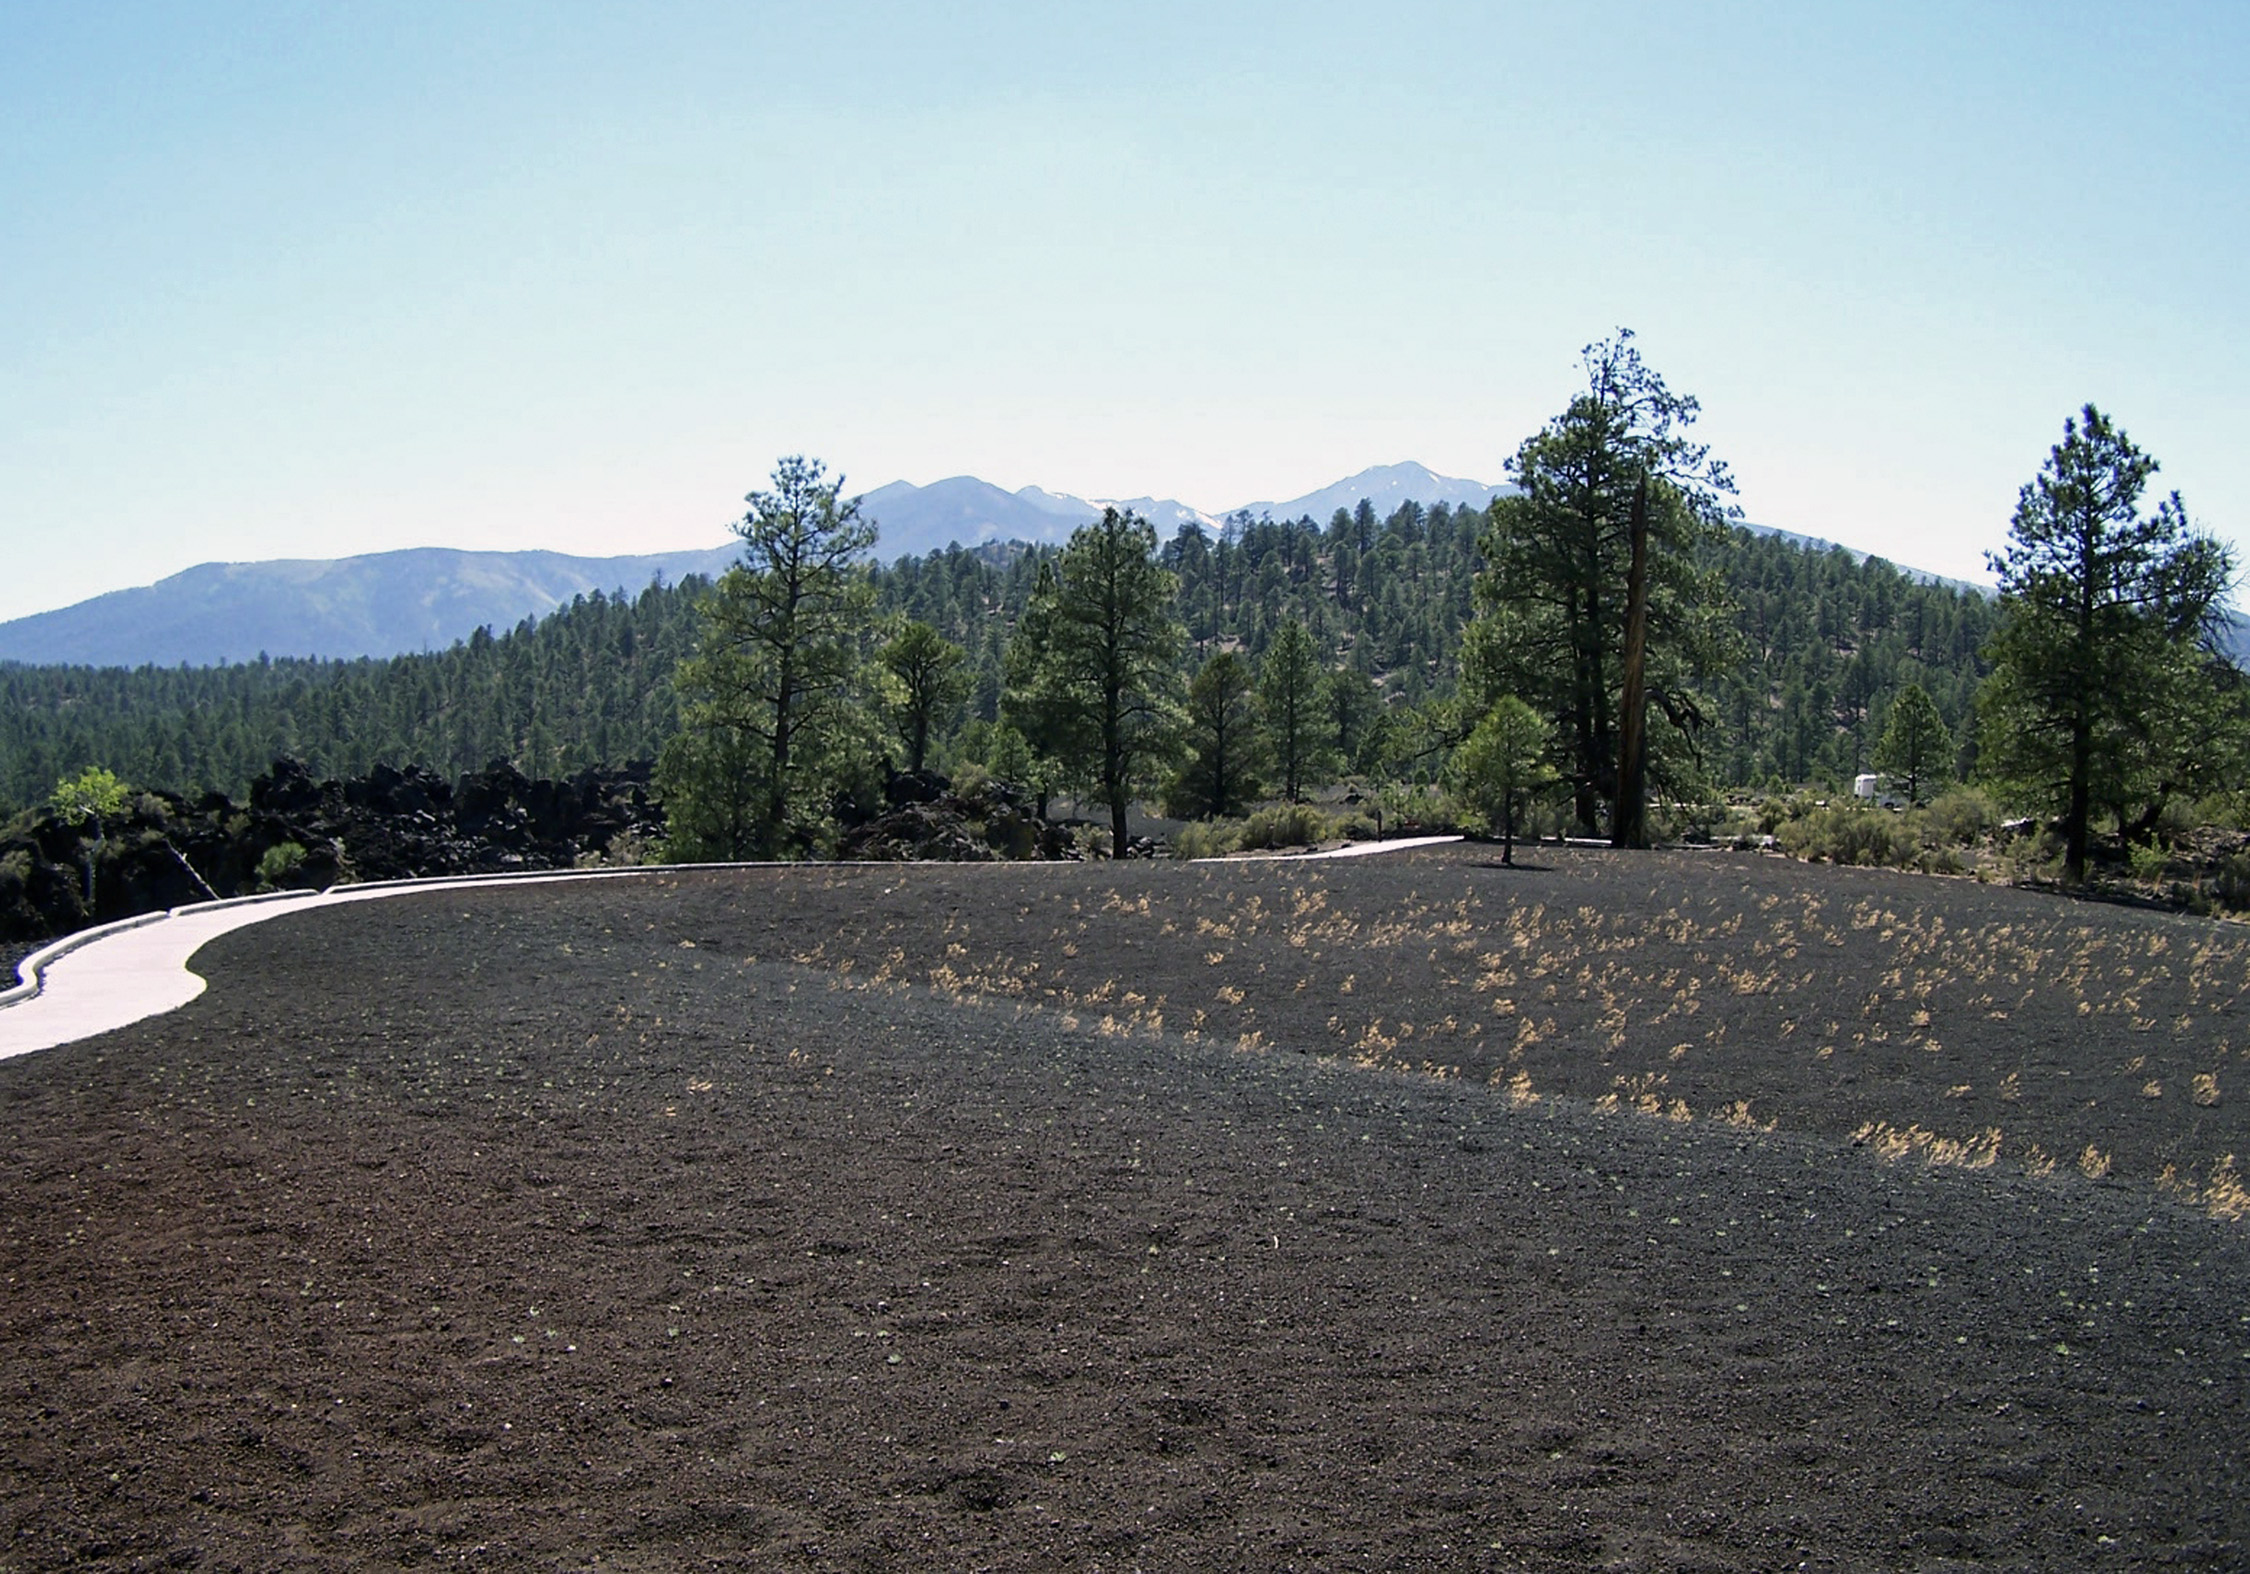 The San Francisco Peaks are the remnants of a stratovolcano